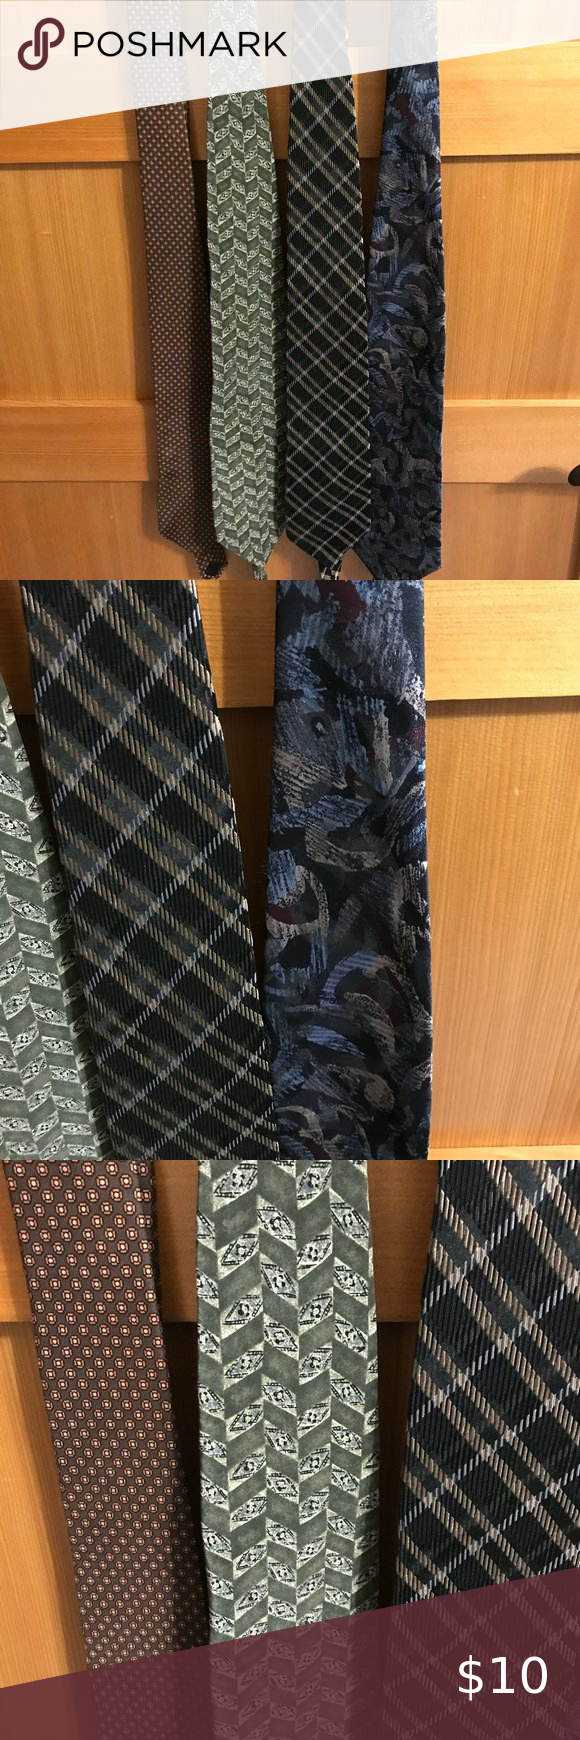 4 Ties Stafford Austin Reed Placenza Towncraft 4 Ties Stafford Performance 100 Silk Austin Reed 100 Silk Placenza 100 Ita Austin Reed Austin Stafford